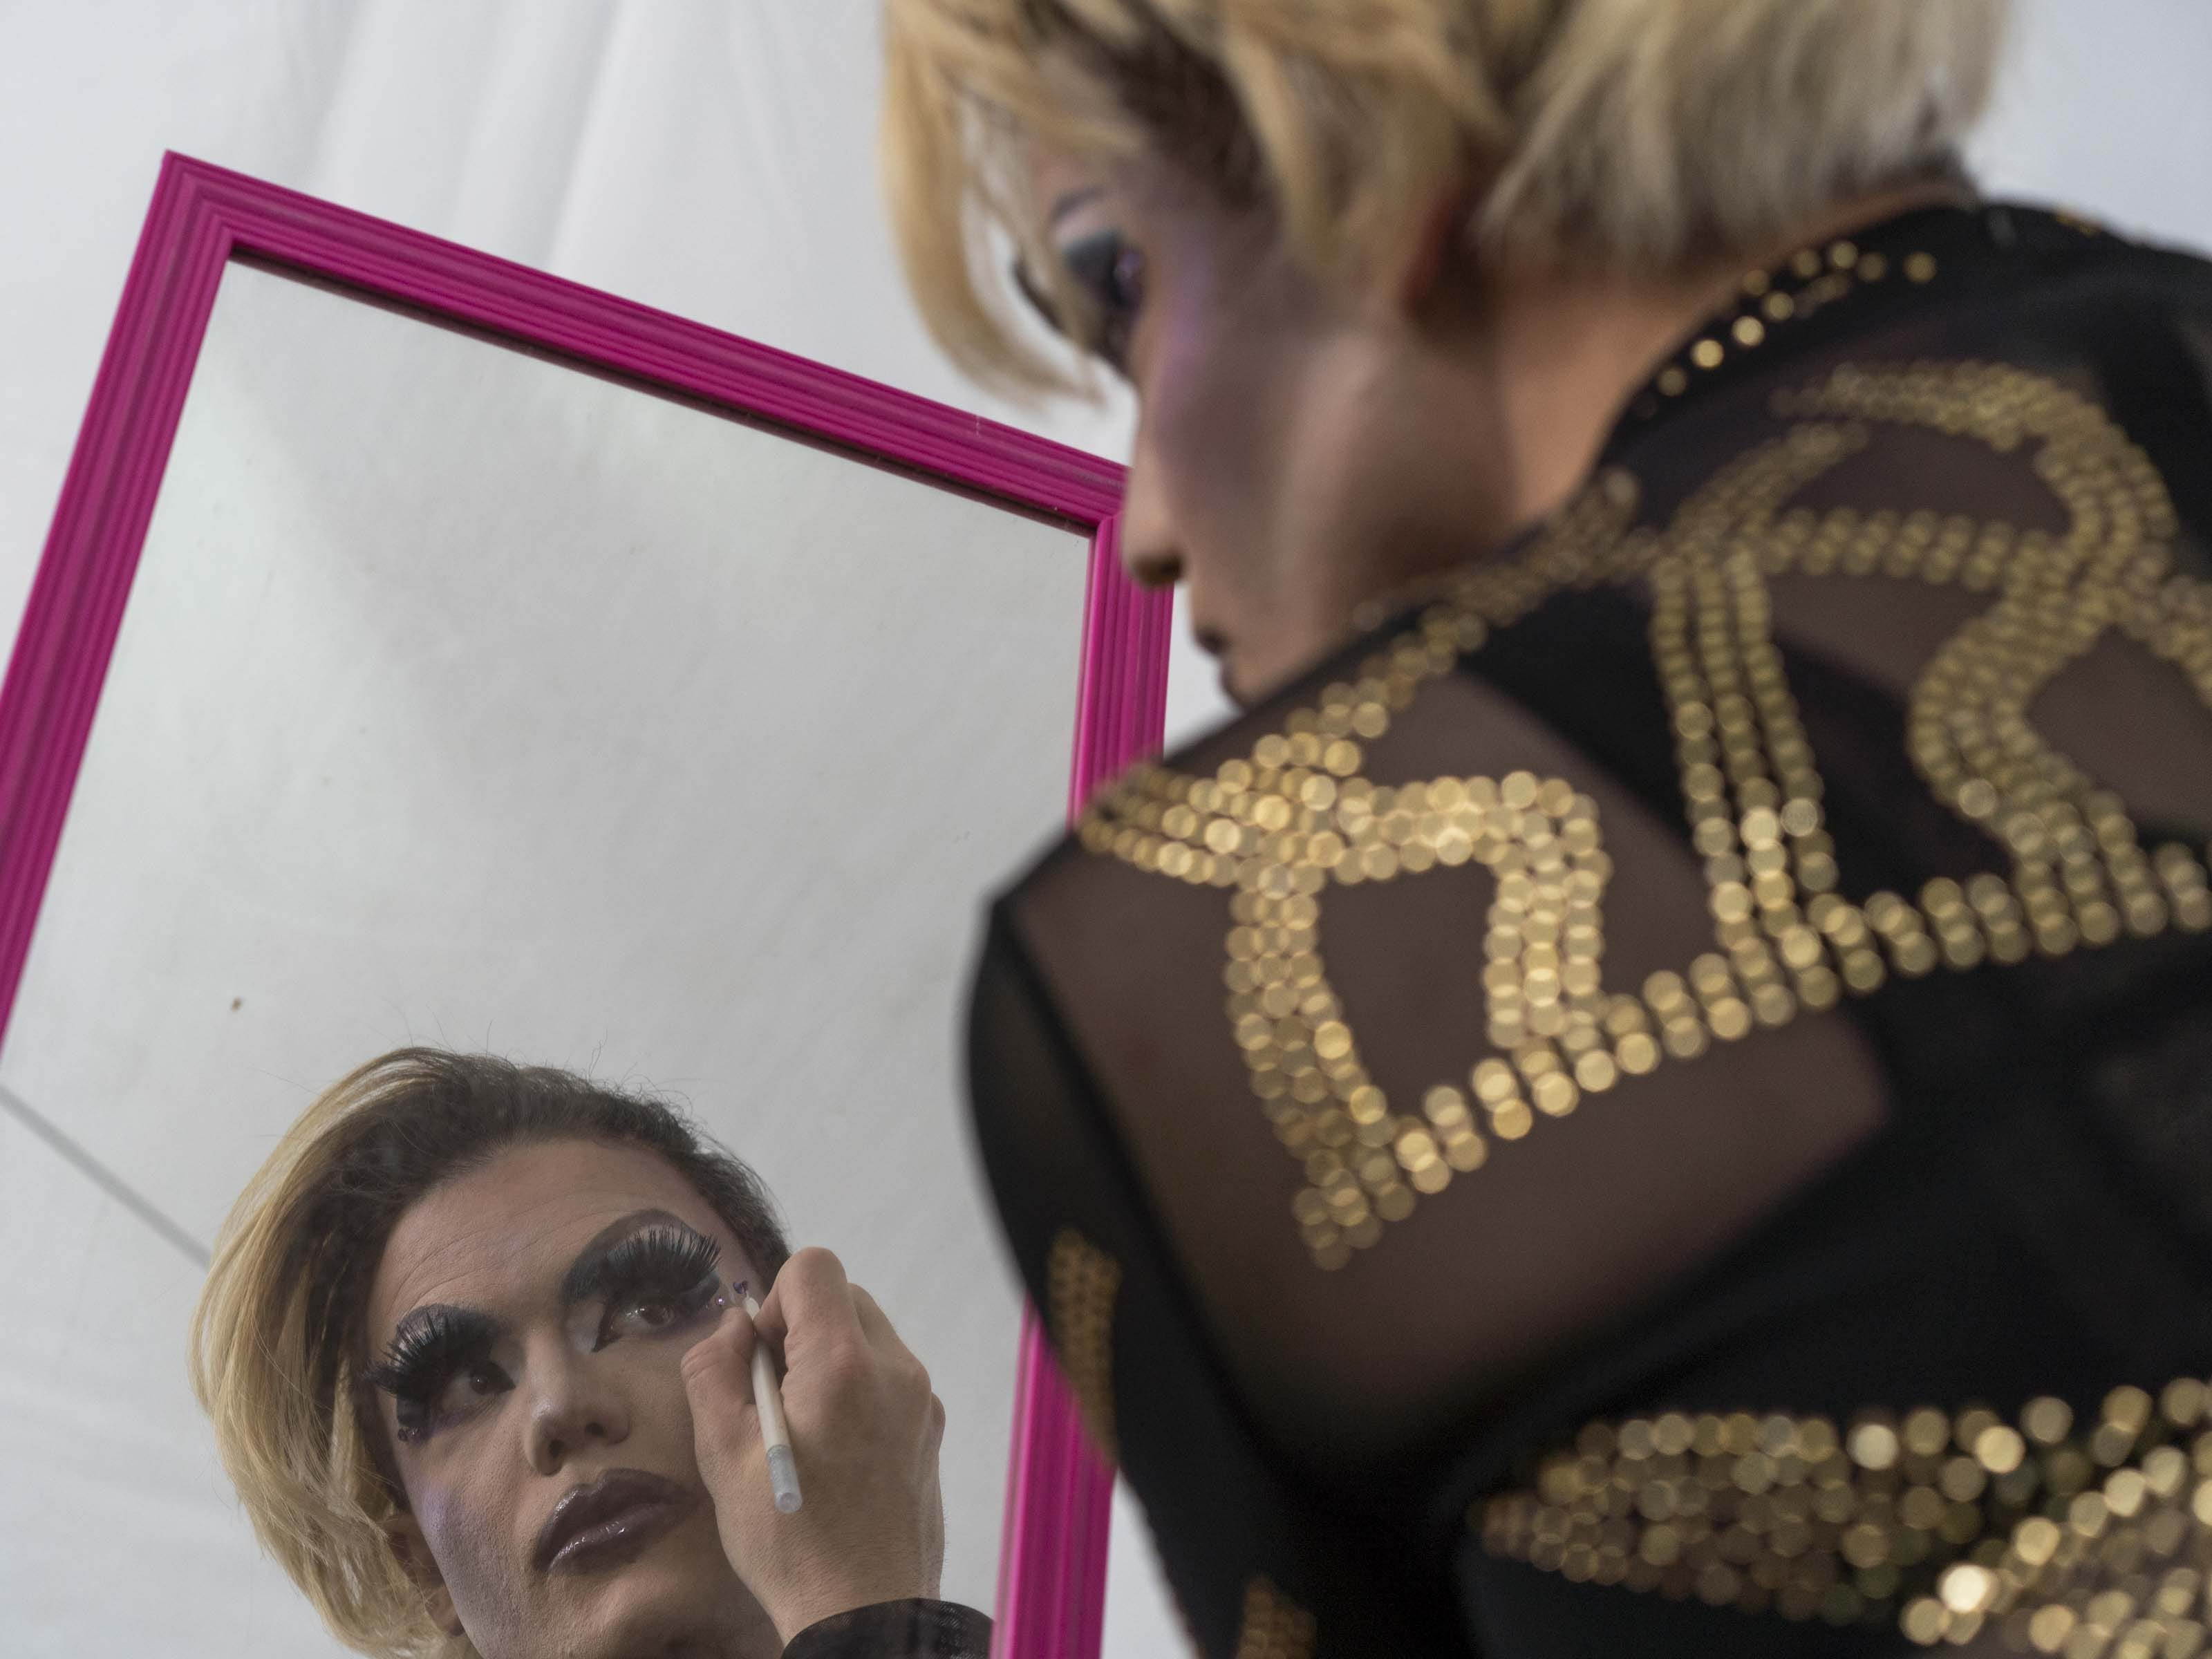 Penny Drynx gets ready to perform at the community stage during Phoenix Pride at Steele Indian School Park on Saturday, April 6, 2019.